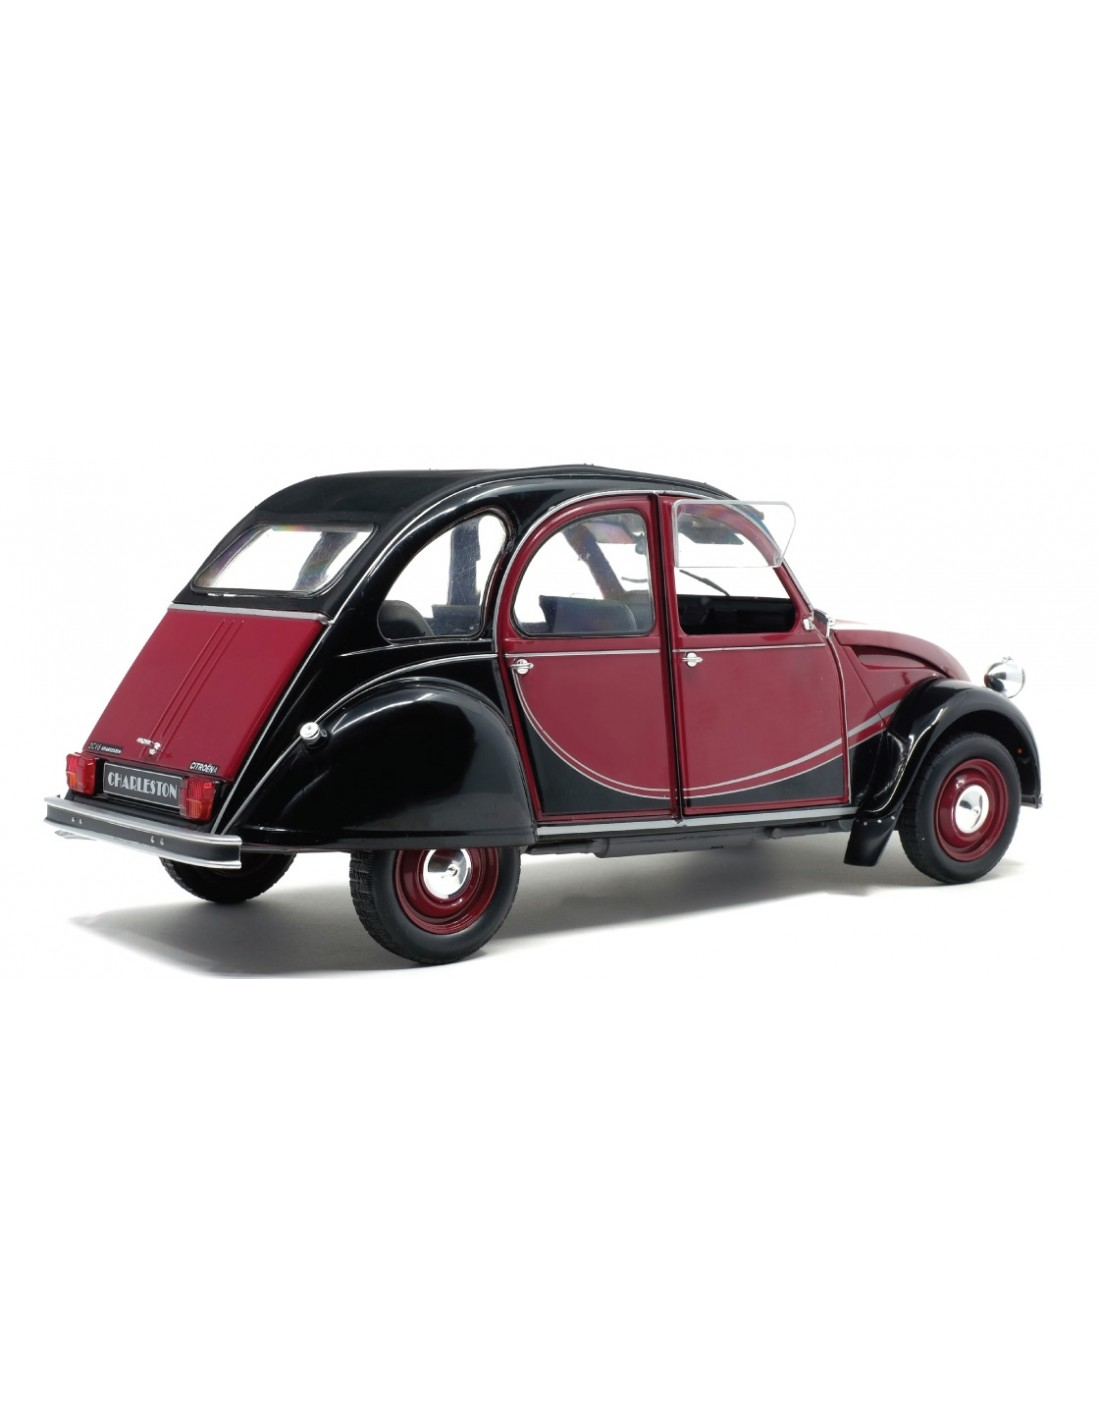 zmodels zmd12001 1  12 citroen 2cv charleston